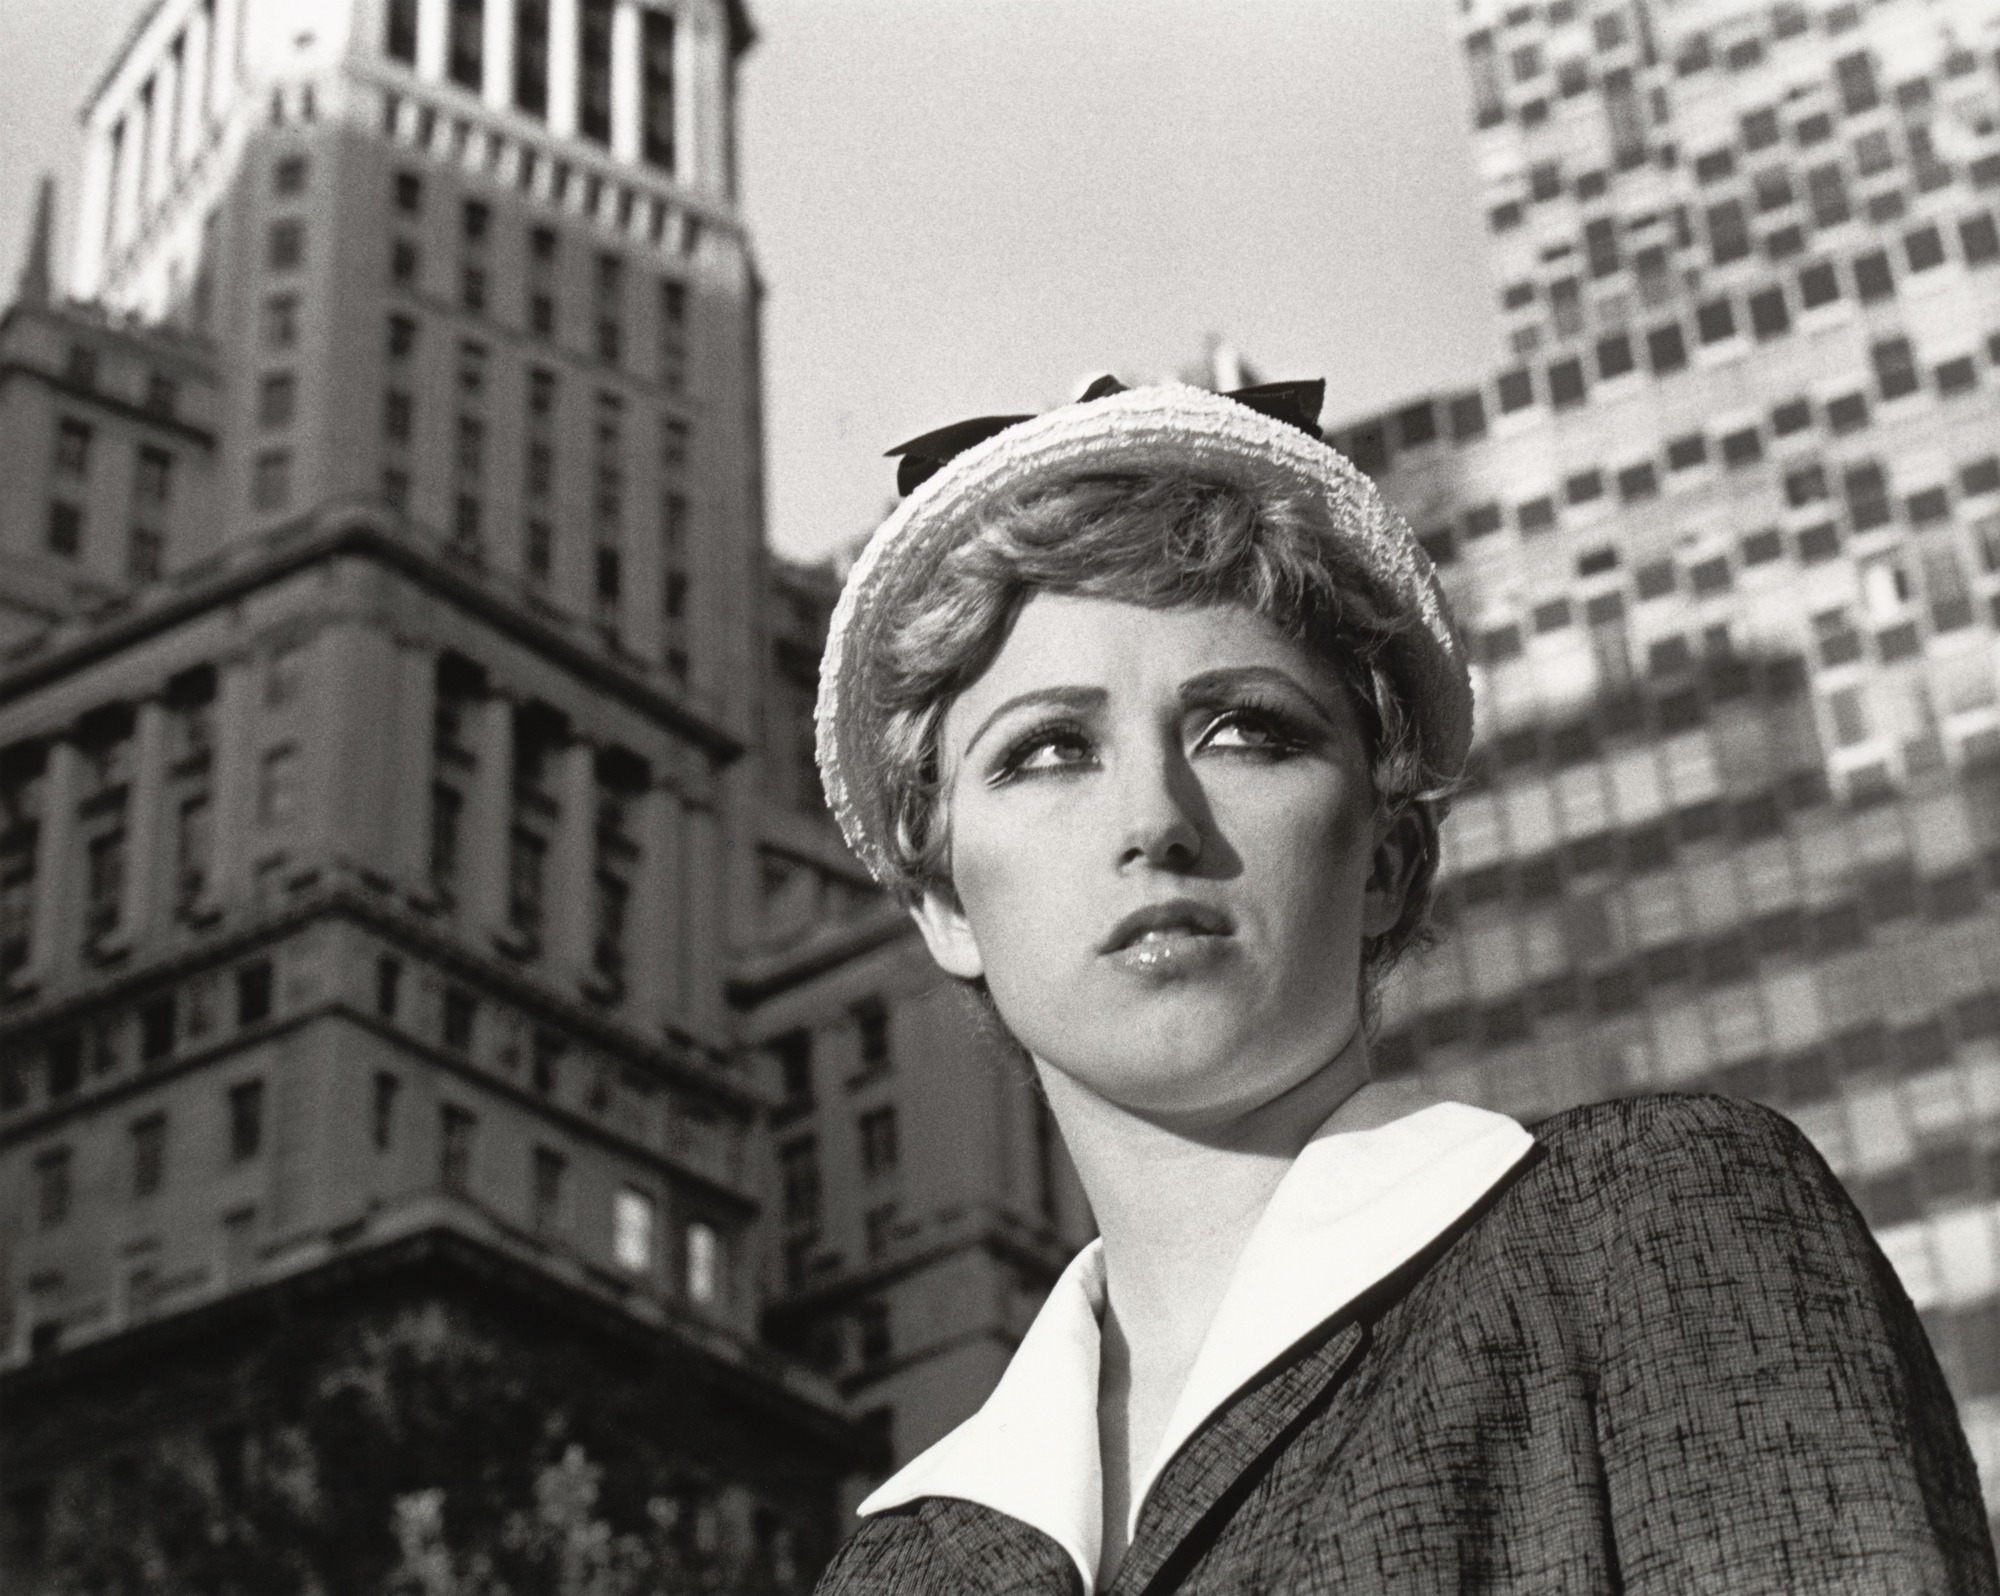 cindy-sherman-untitled-still-21